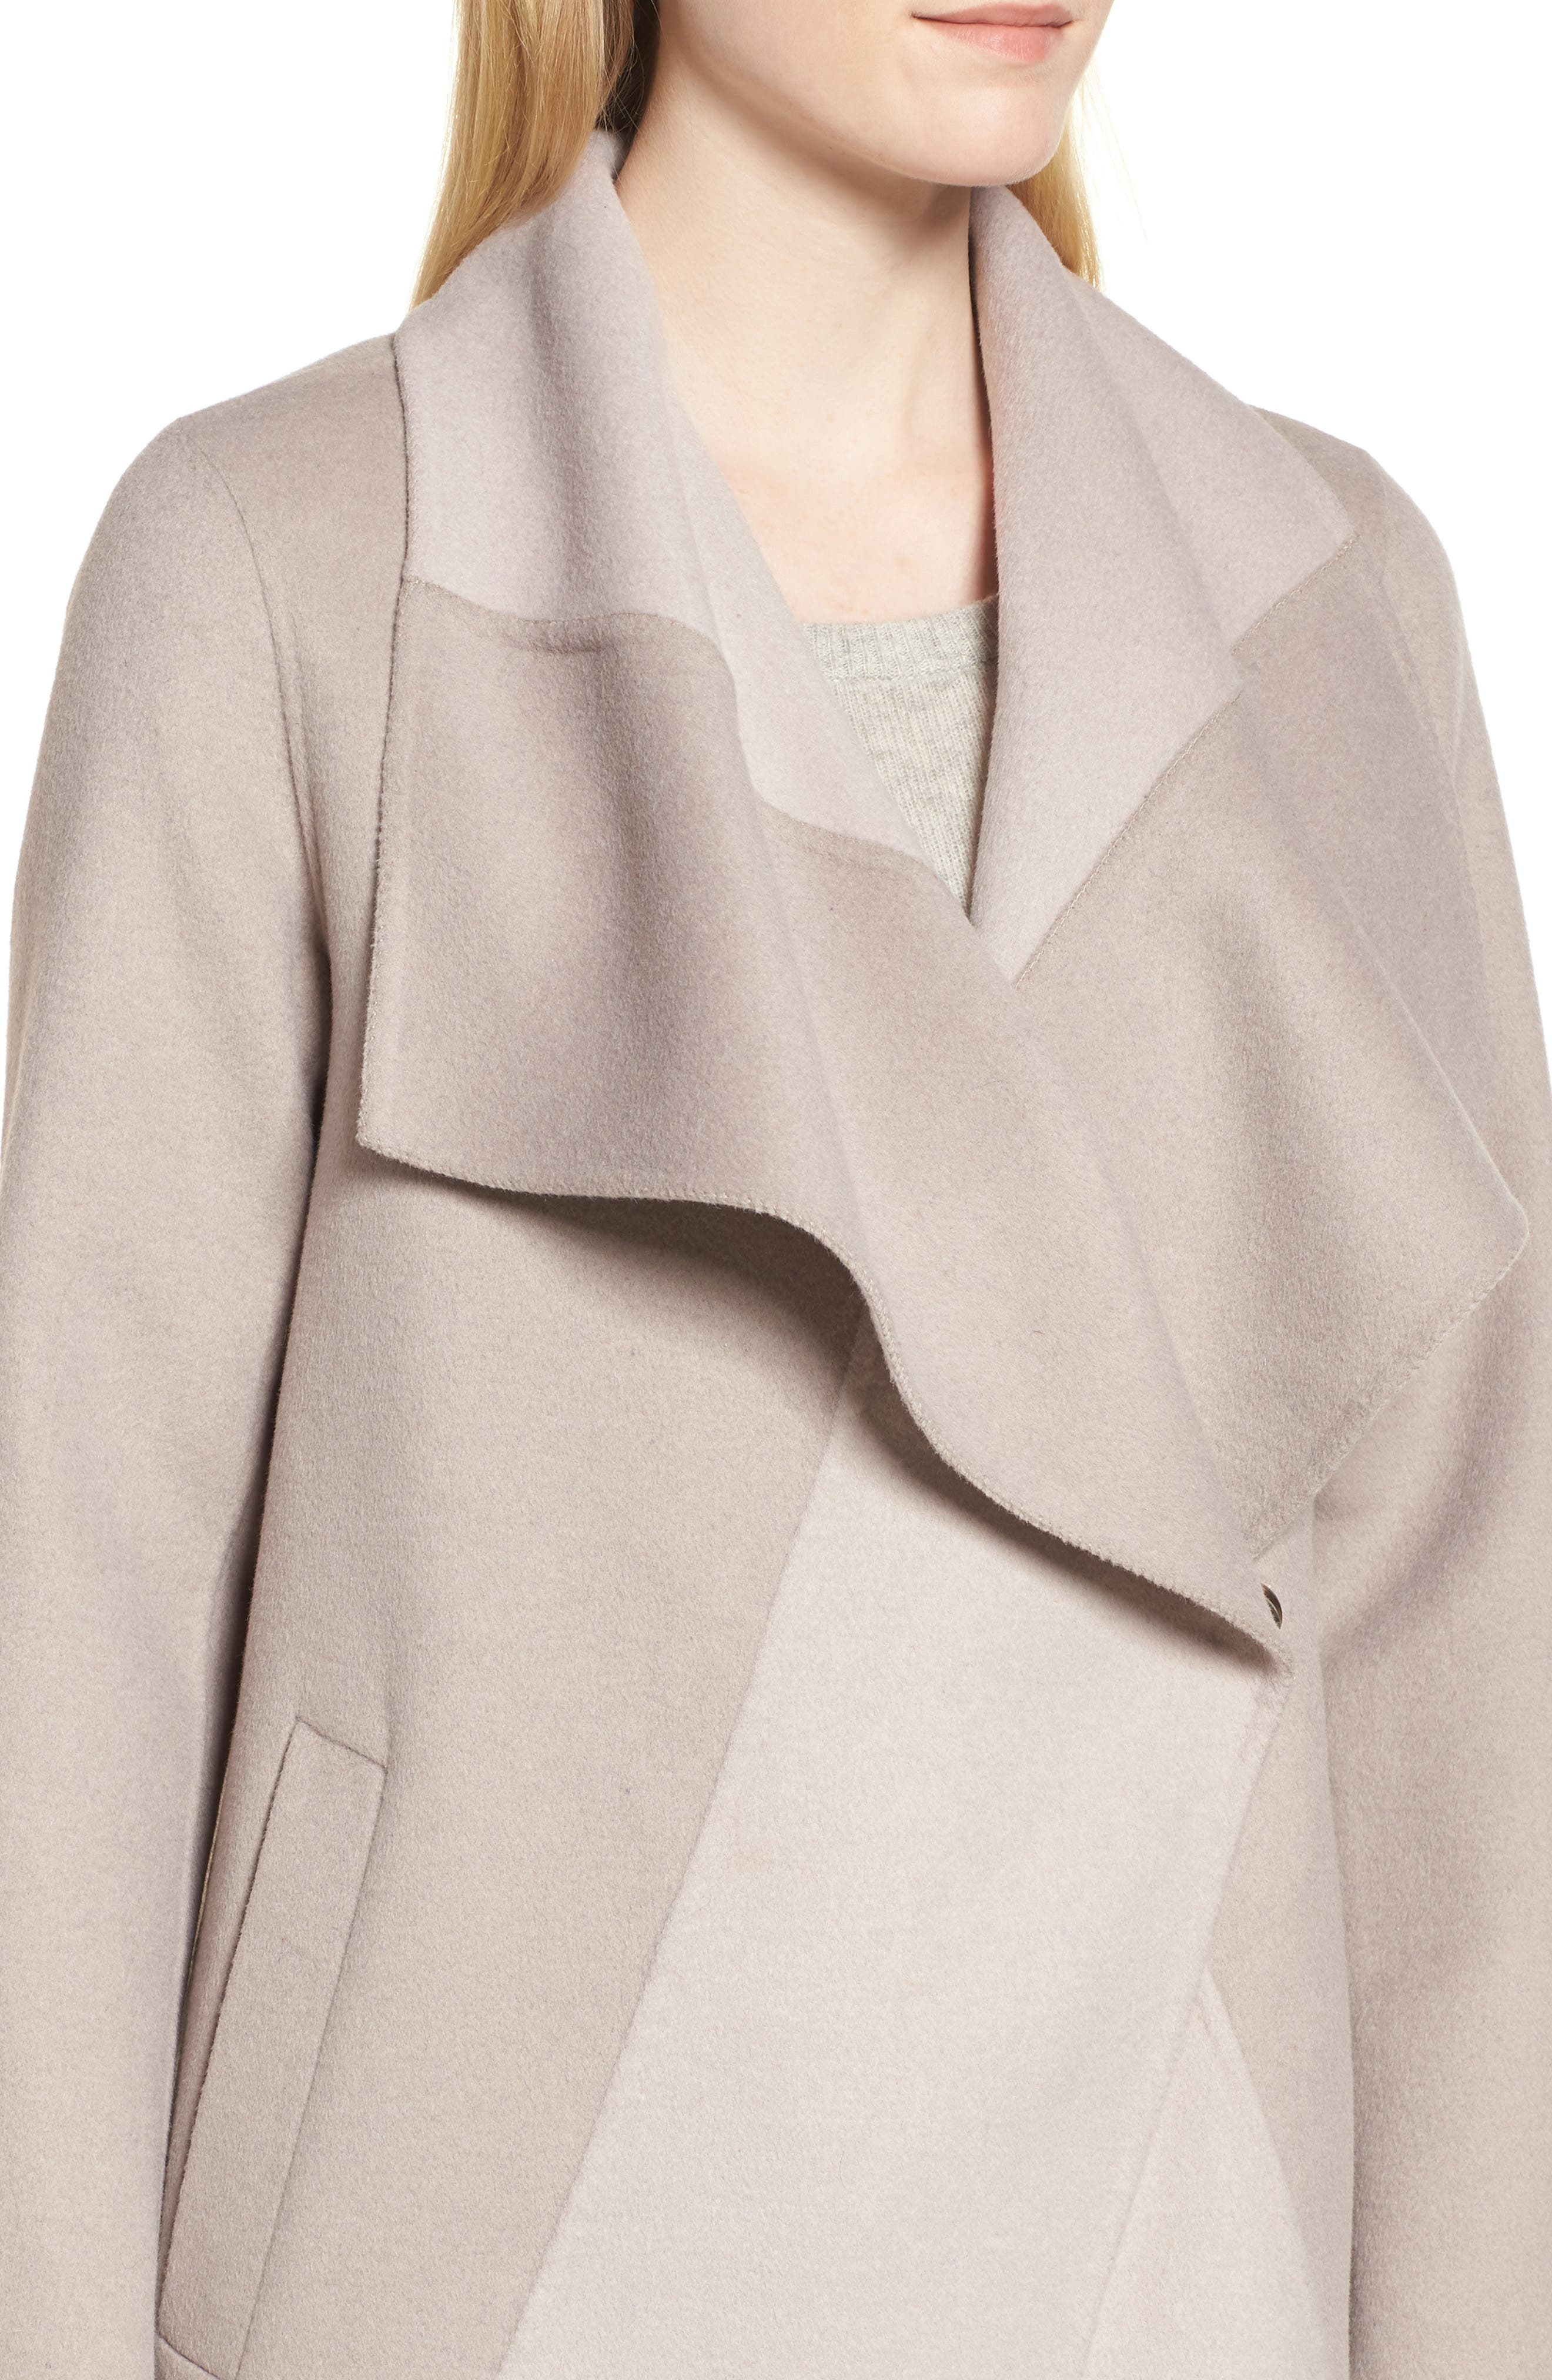 Nicky Double Face Wool Blend Oversize Coat,                             Alternate thumbnail 4, color,                             OYSTER BAY/ BROWN SUGAR